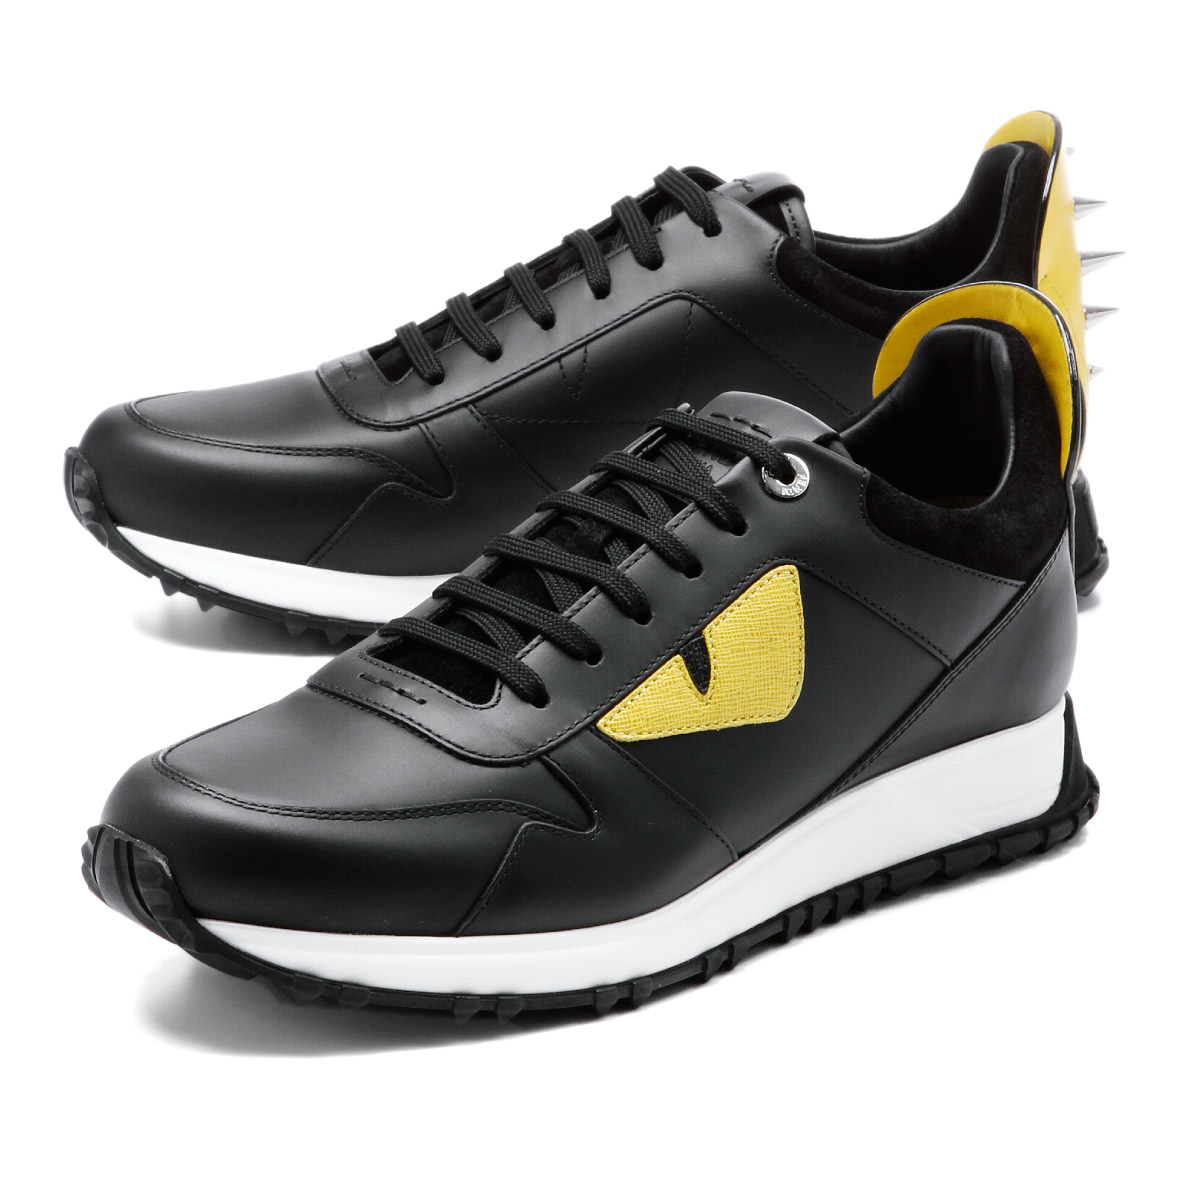 4c33d39a4acc importshopdouble  FENDI Fendi sneakers BLACK+FENDI GREY + YELLOW ...